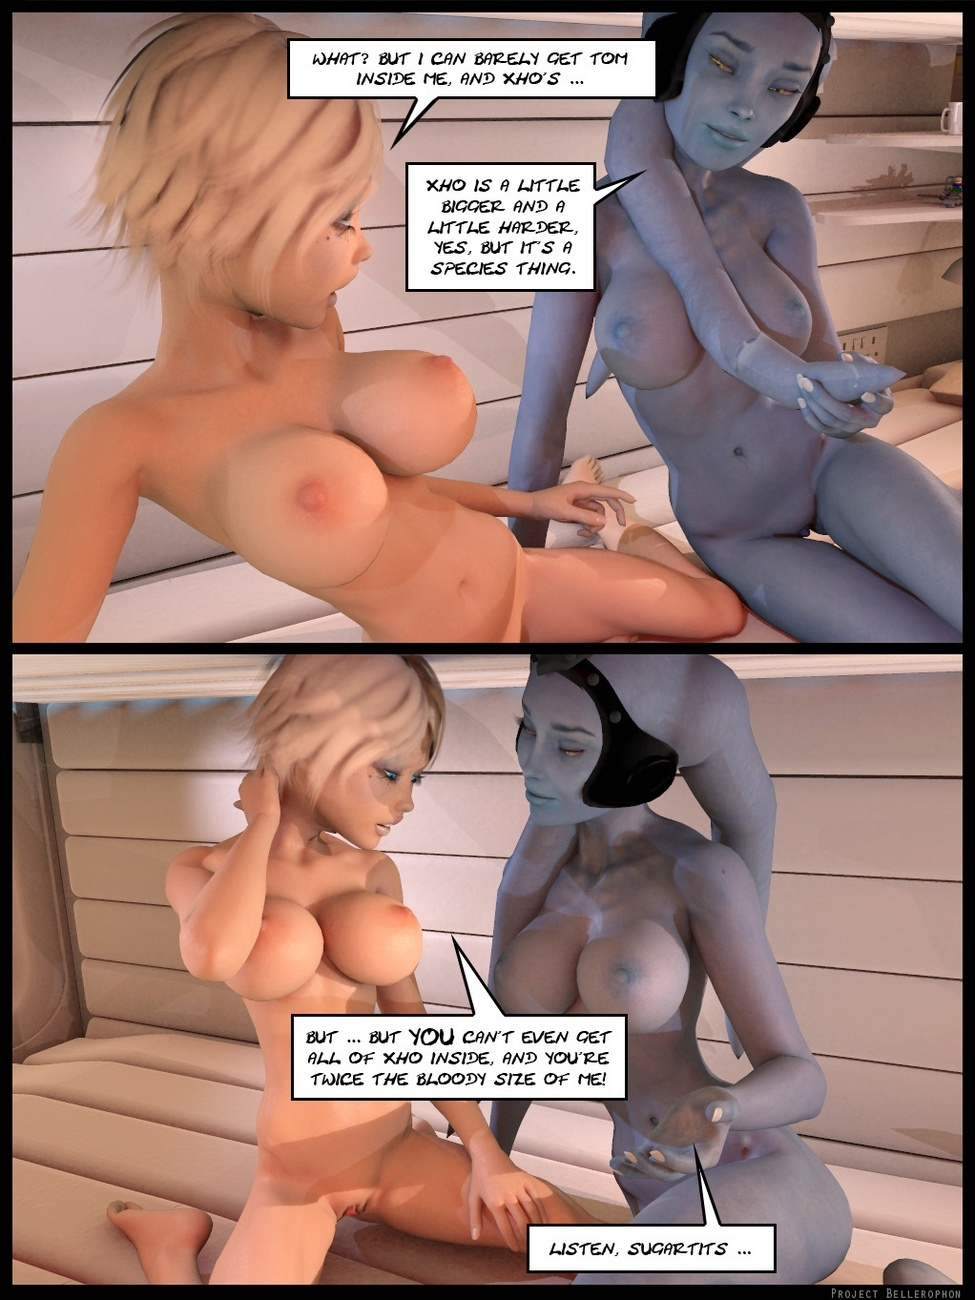 Shadows-And-Dust 81 free sex comic